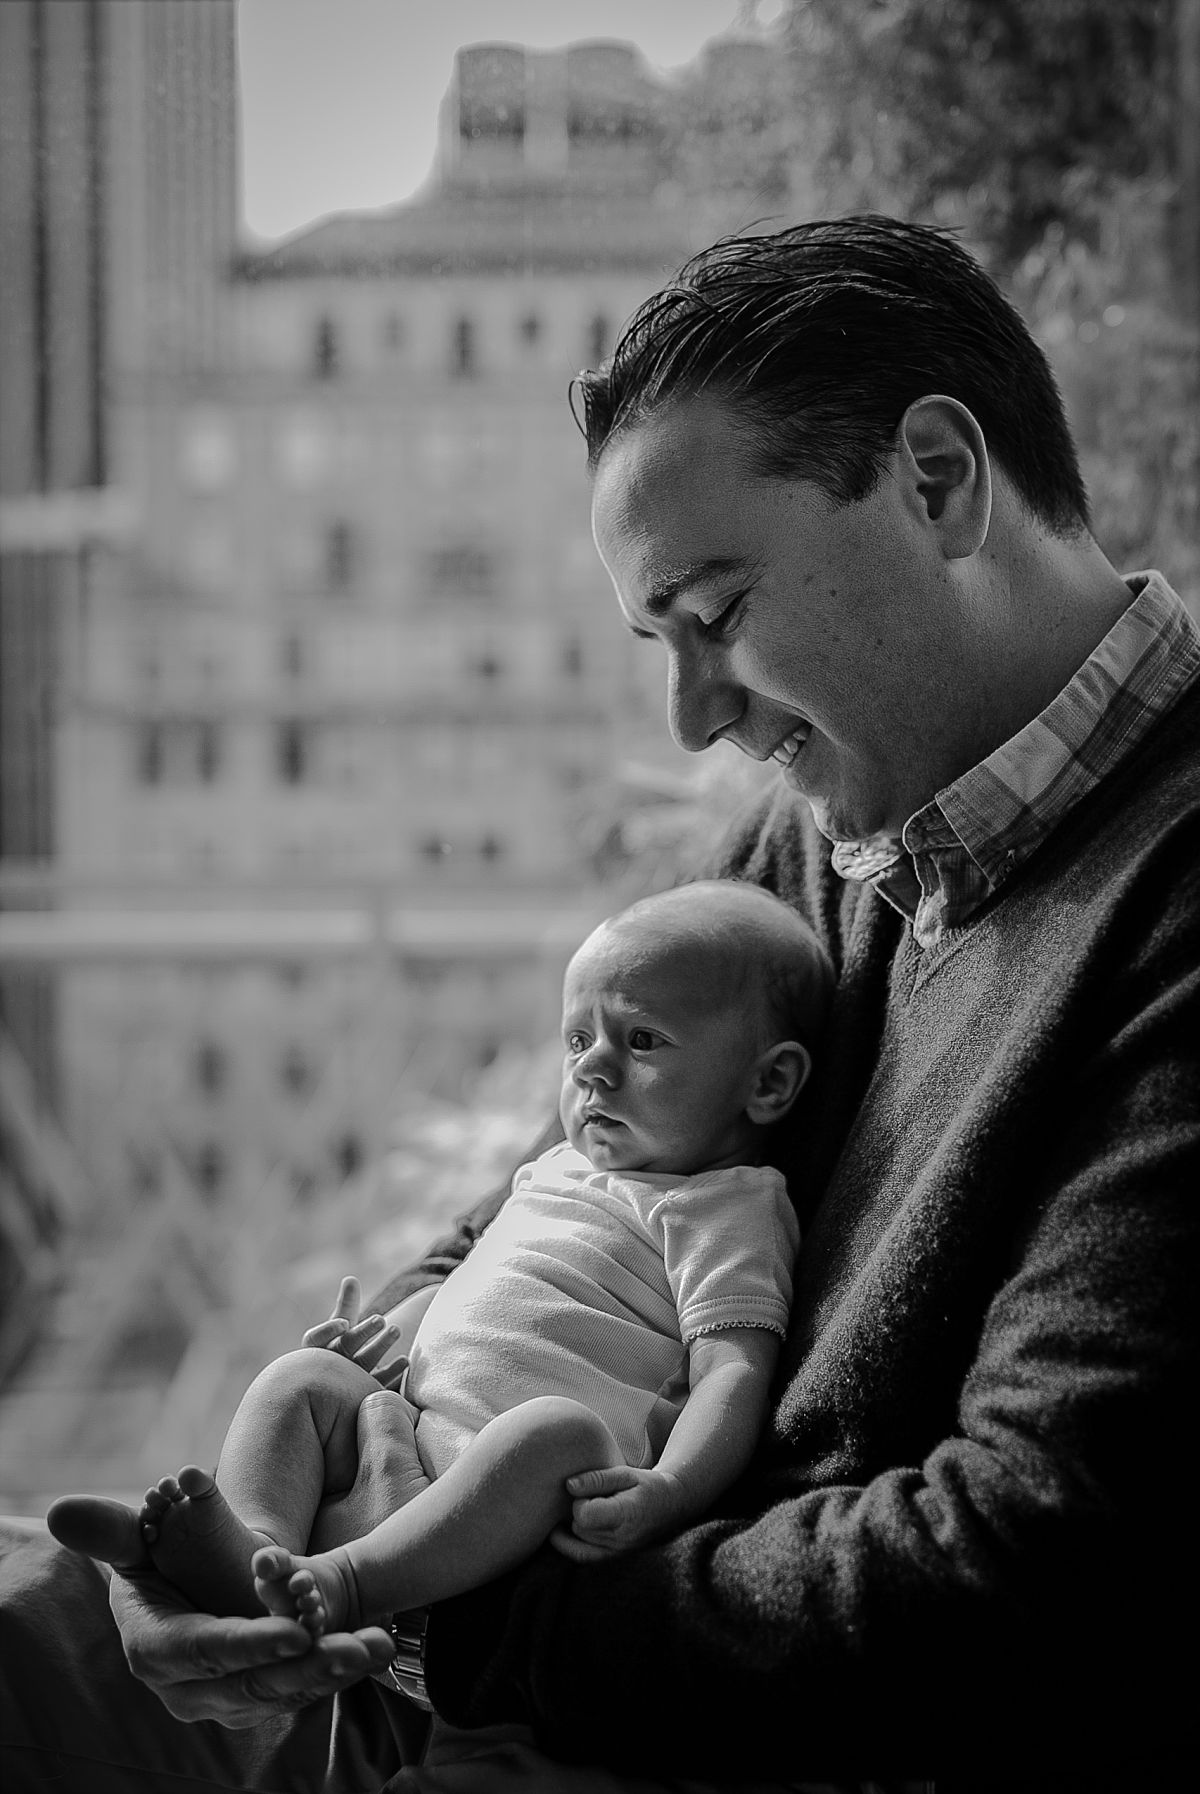 black and white portrait of dad and newborn daughter sitting in window enjoying the sun during newborn session in downtown new york. photo by krystil mcdowall photography